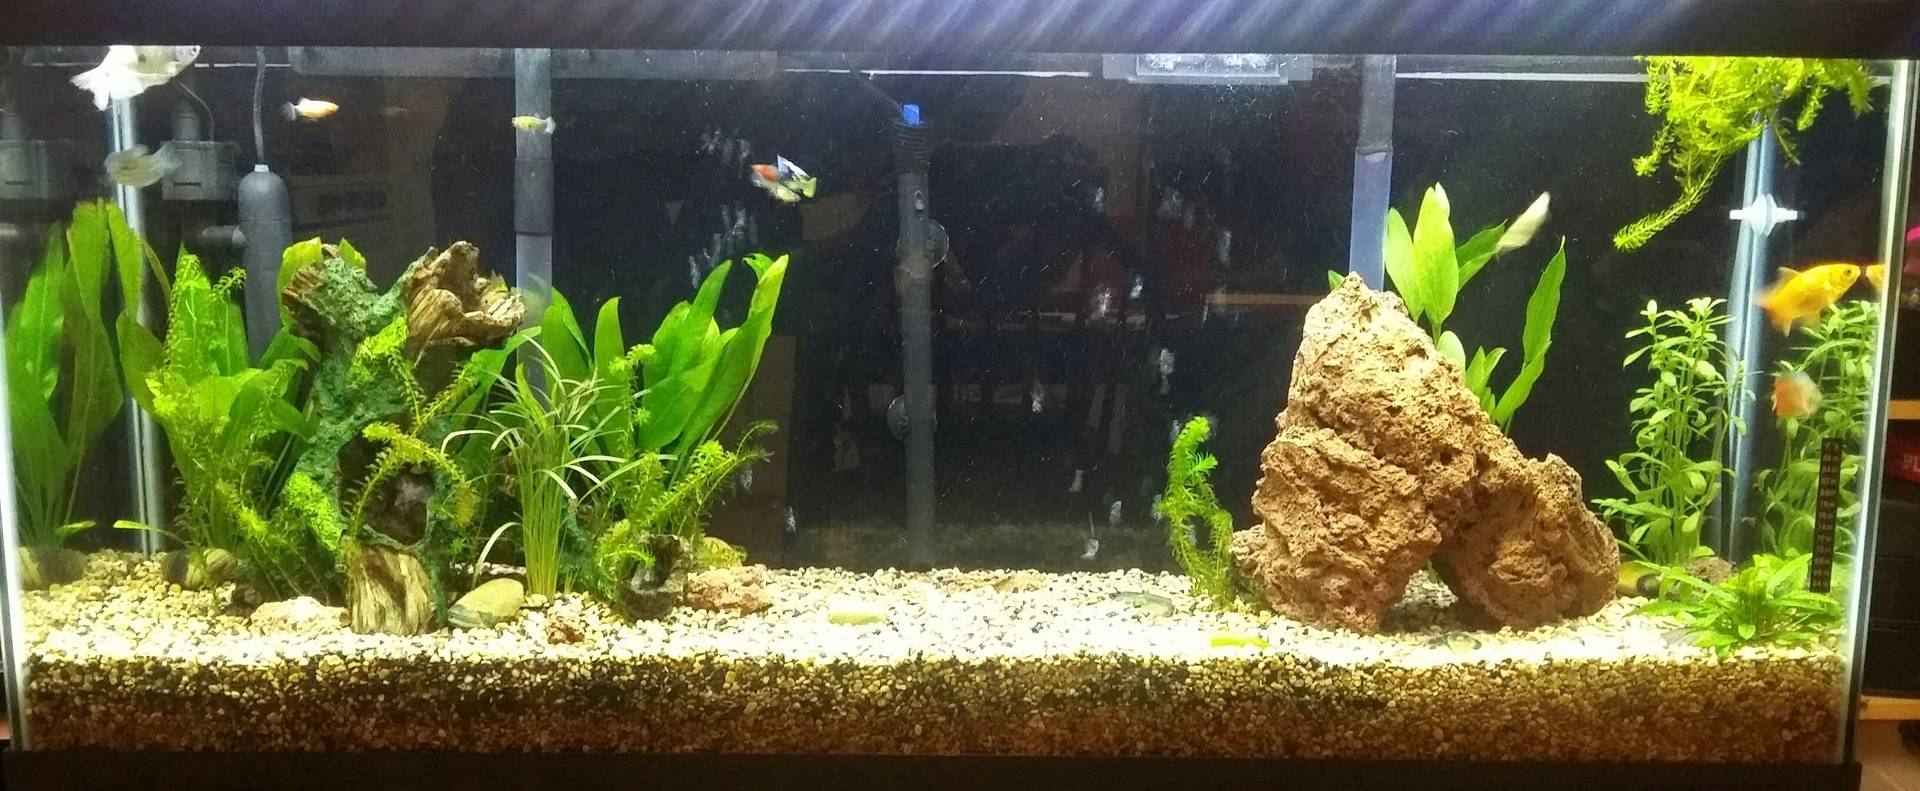 Avron's Amazing Aquascape